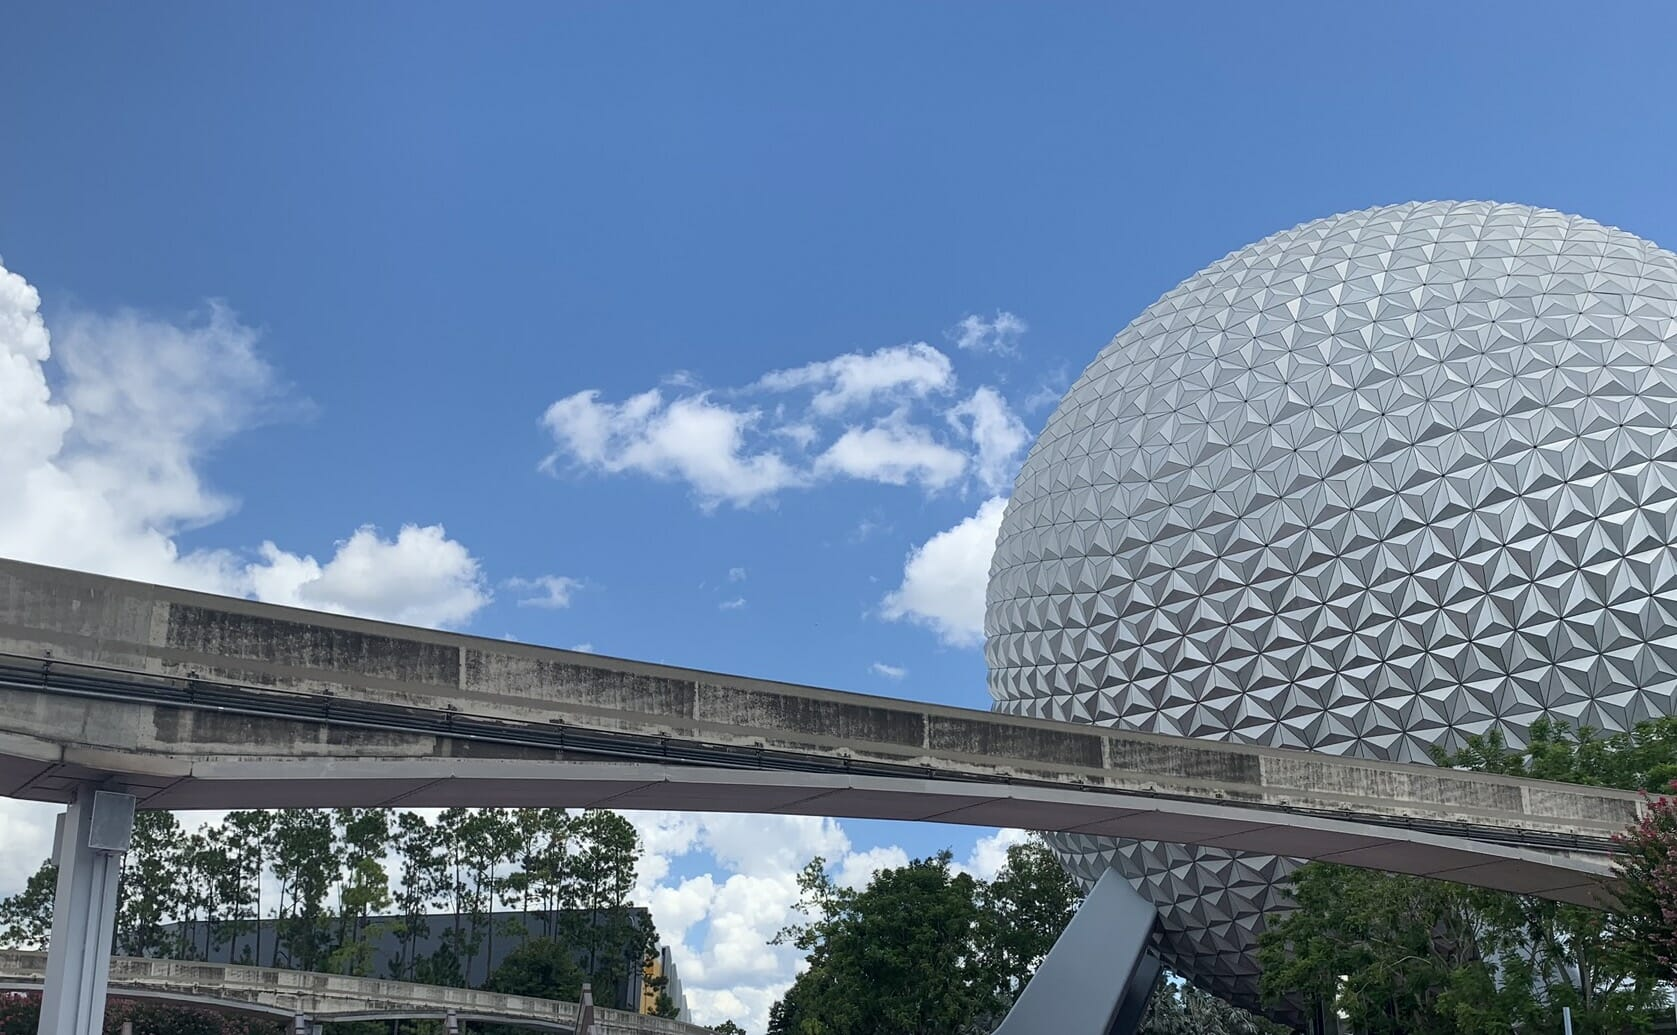 What Will The Weather Be Like During My Theme Park Vacation?